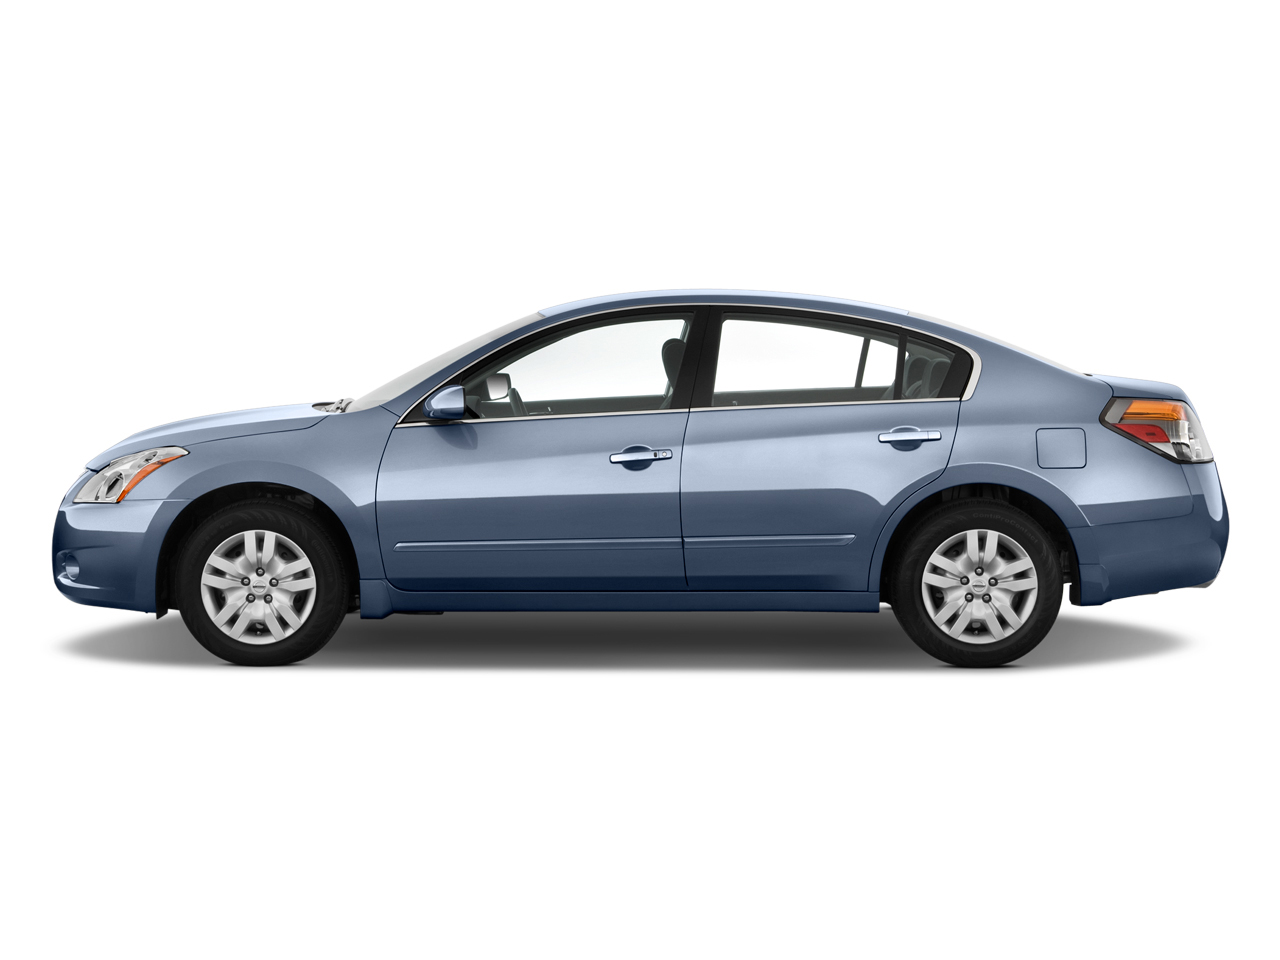 2012 nissan altima review ratings specs prices and photos the car connection. Black Bedroom Furniture Sets. Home Design Ideas